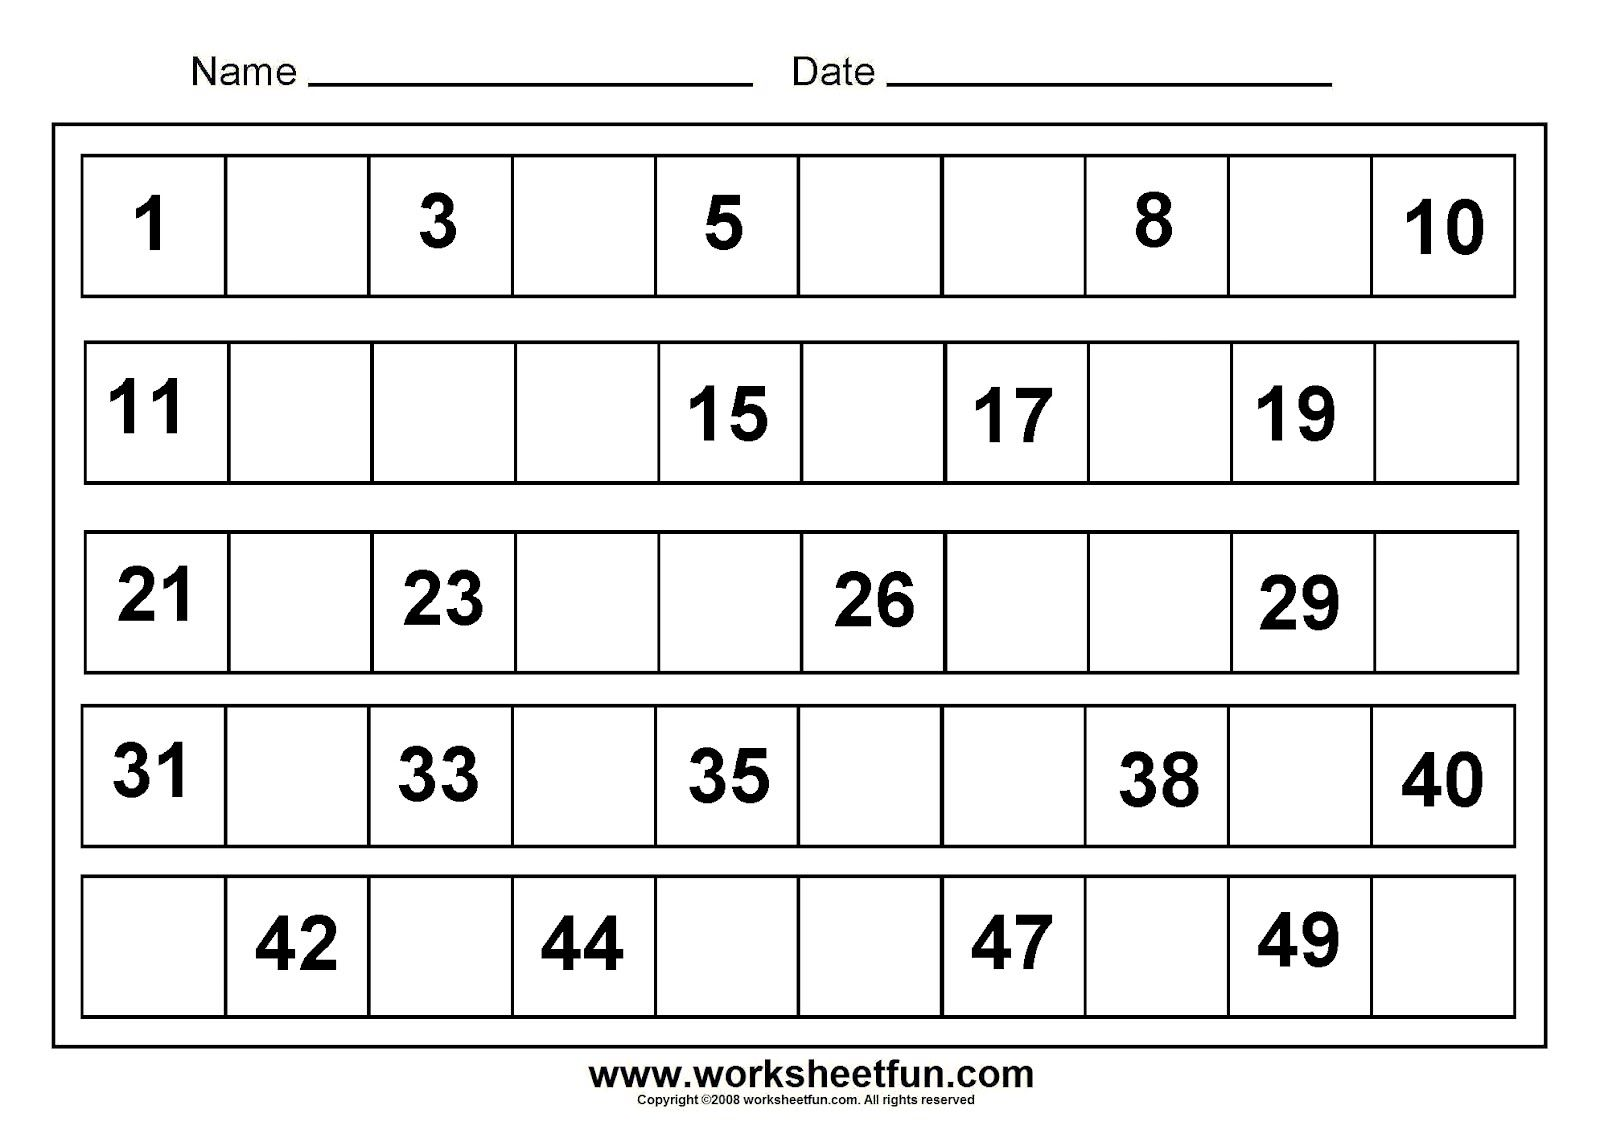 Worksheet Worksheets Printable Free 1000 images about work sheets on pinterest math worksheets kindergarten and worksheets